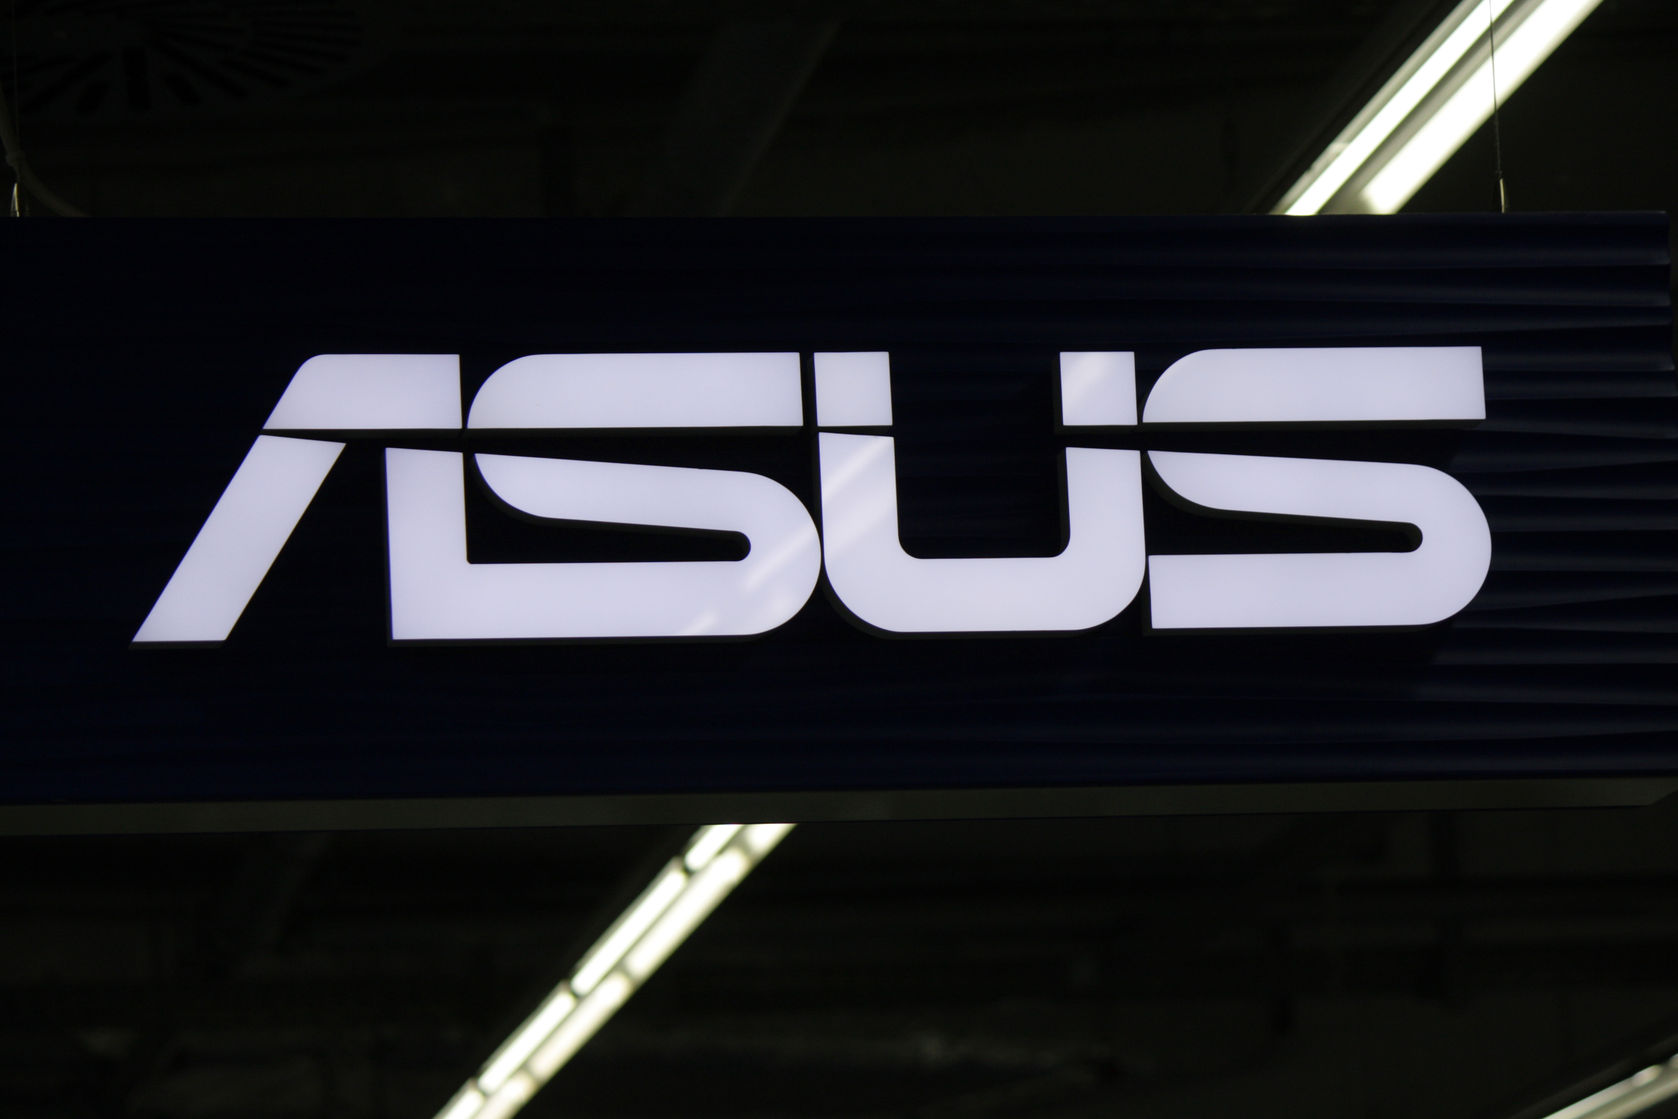 asus details its powerful new vivomini pcs with optional